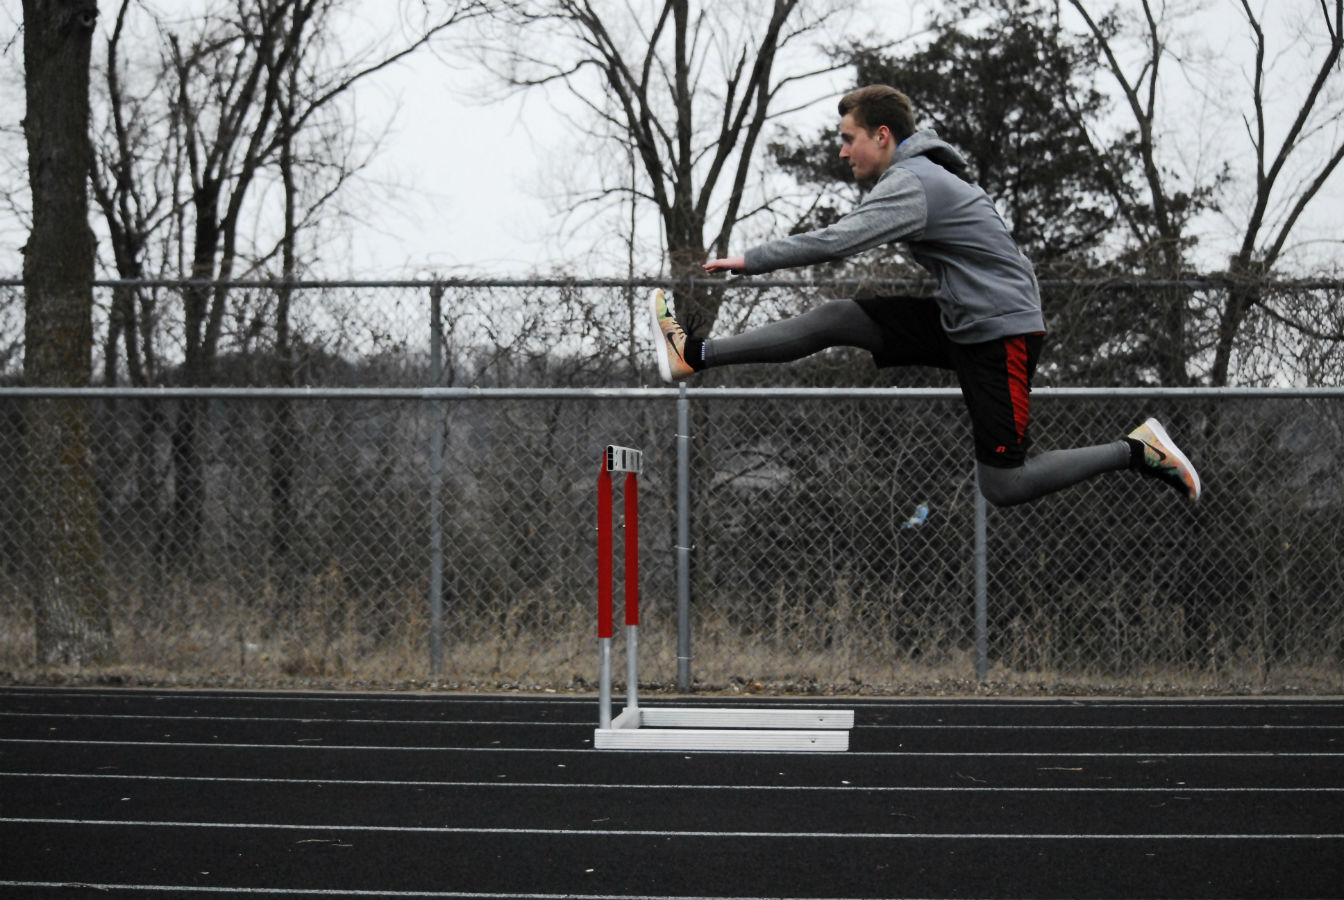 Bryson Felton practicing hurdles outside once the snow has finally melted.